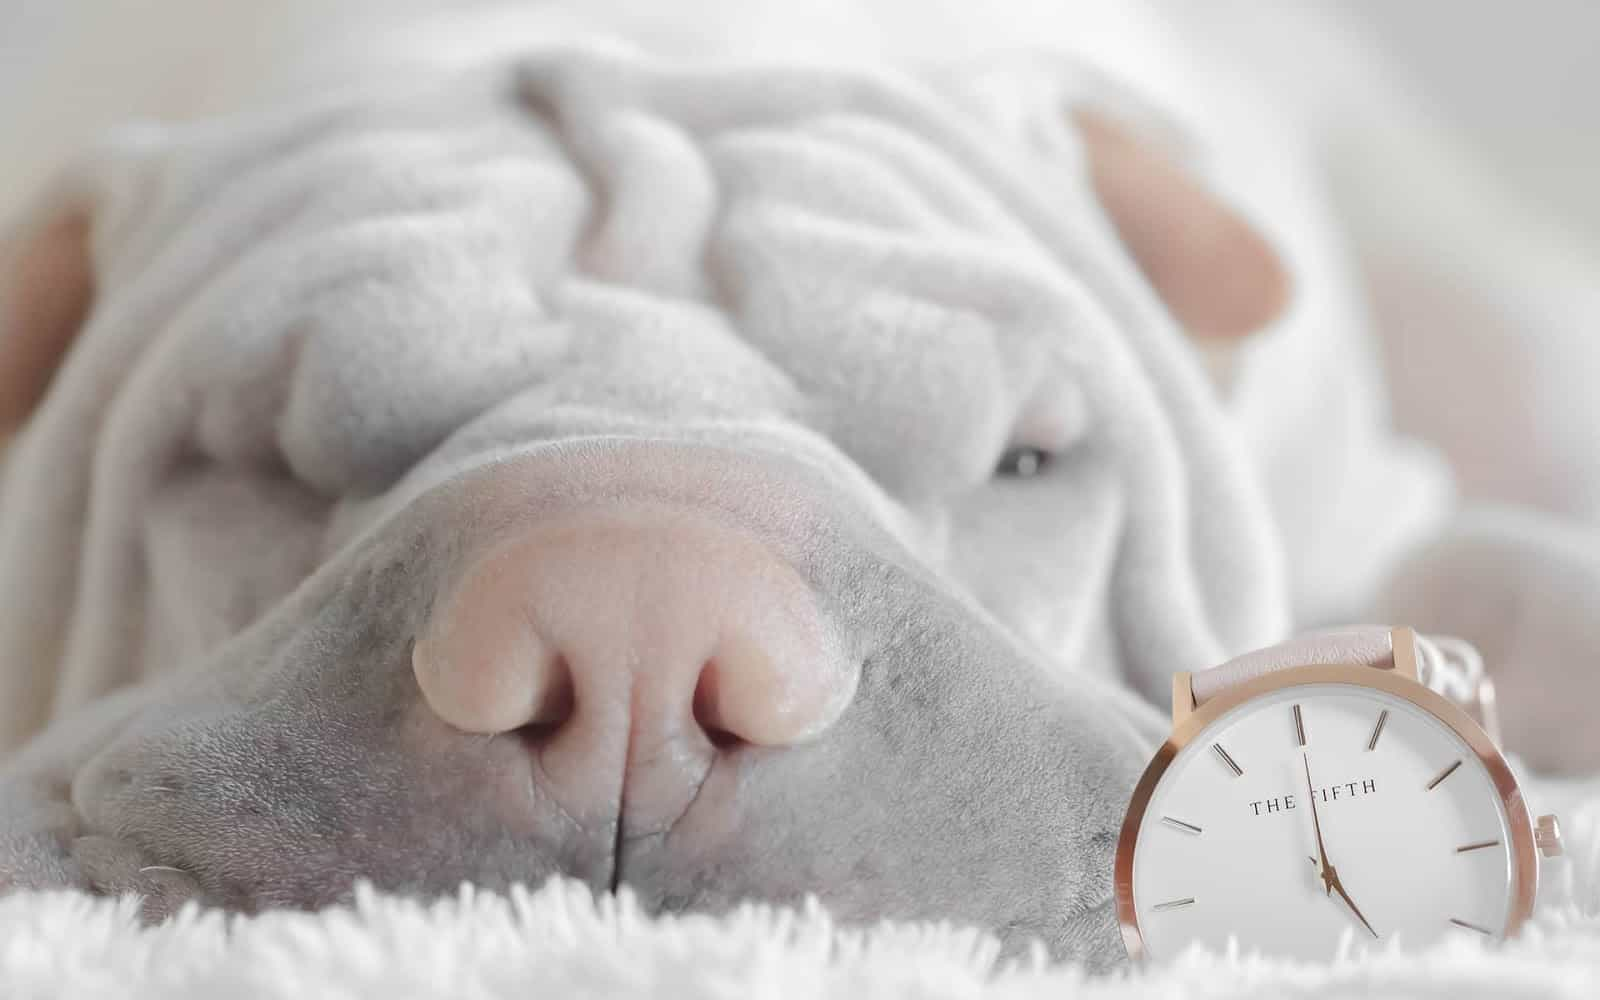 sharpei next to a watch